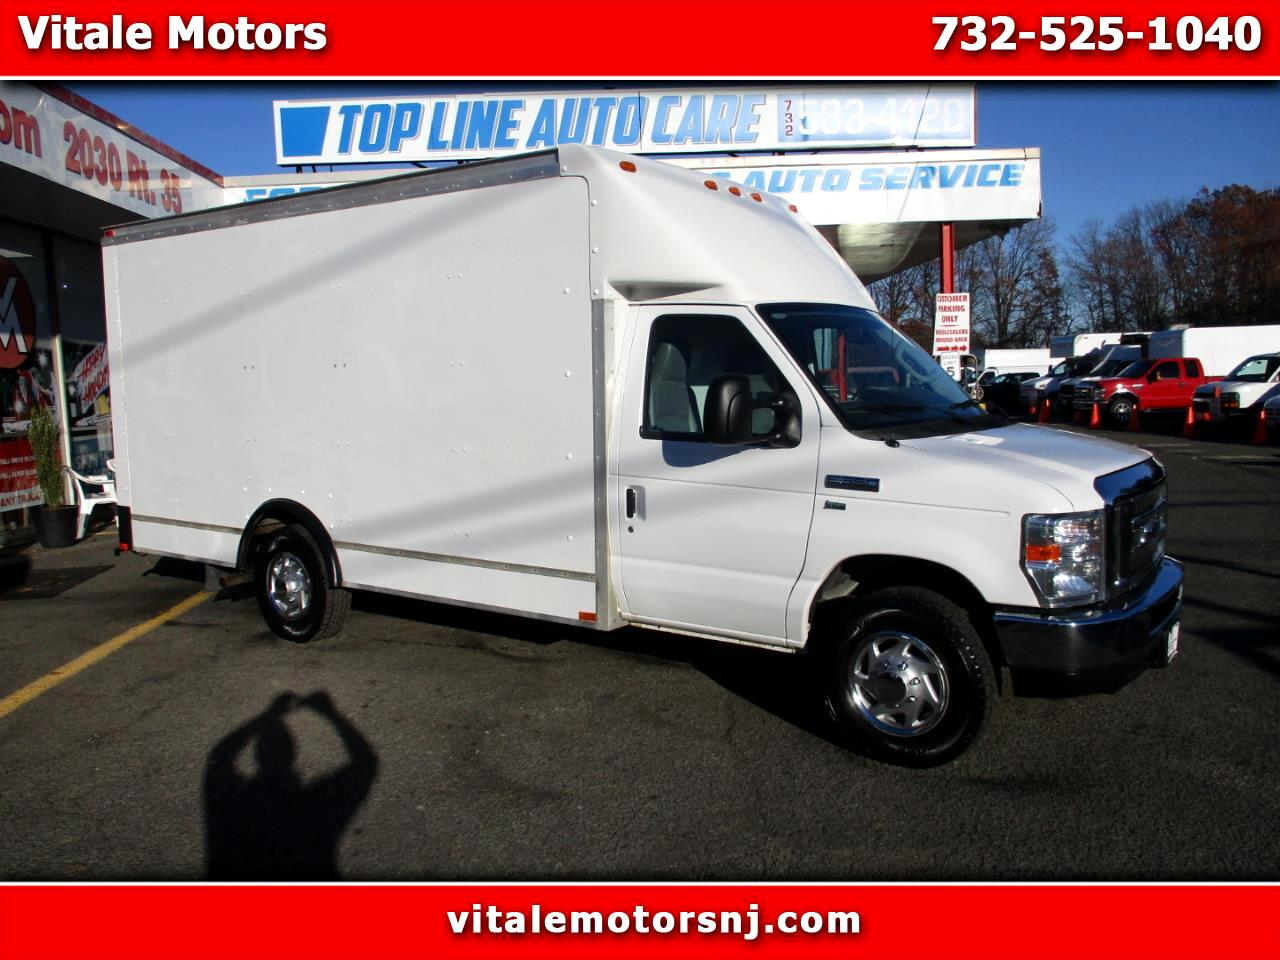 2012 Ford Econoline E-350 CUBE VAN 14 FOOT BOX TRUCK